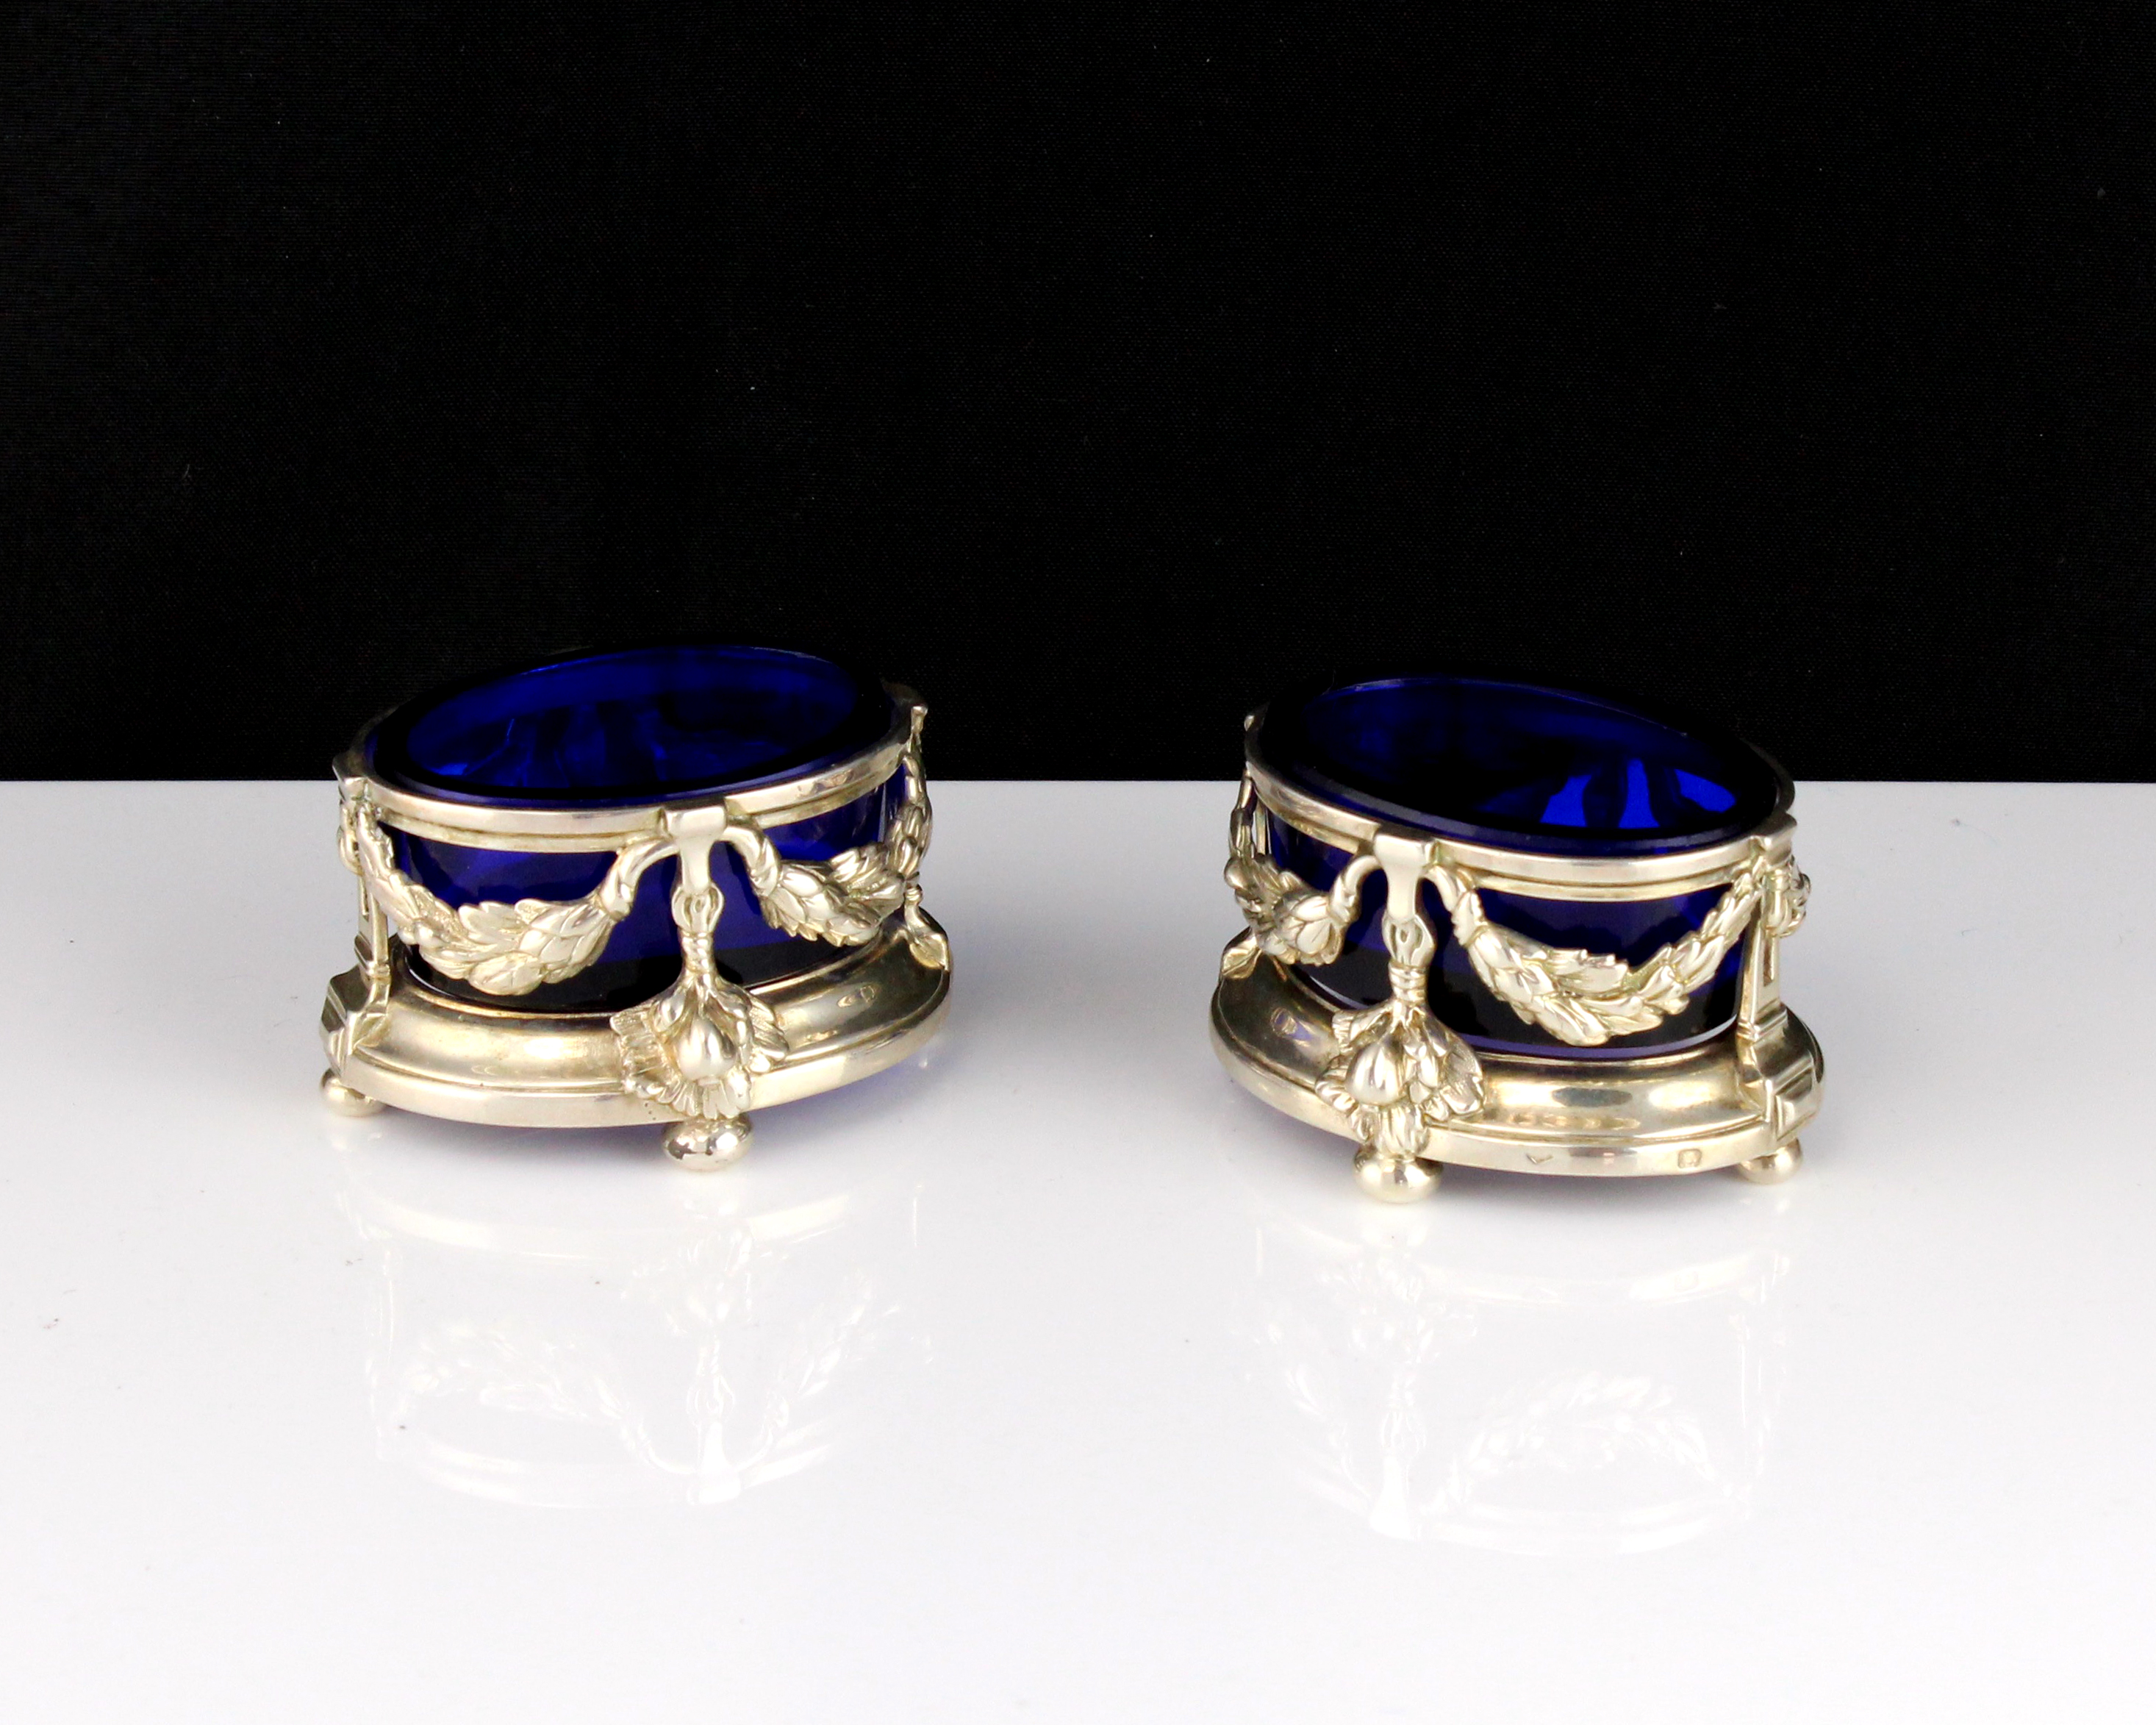 A pair of antique 19th Century French Silver salt cellars each of oval form, designed with